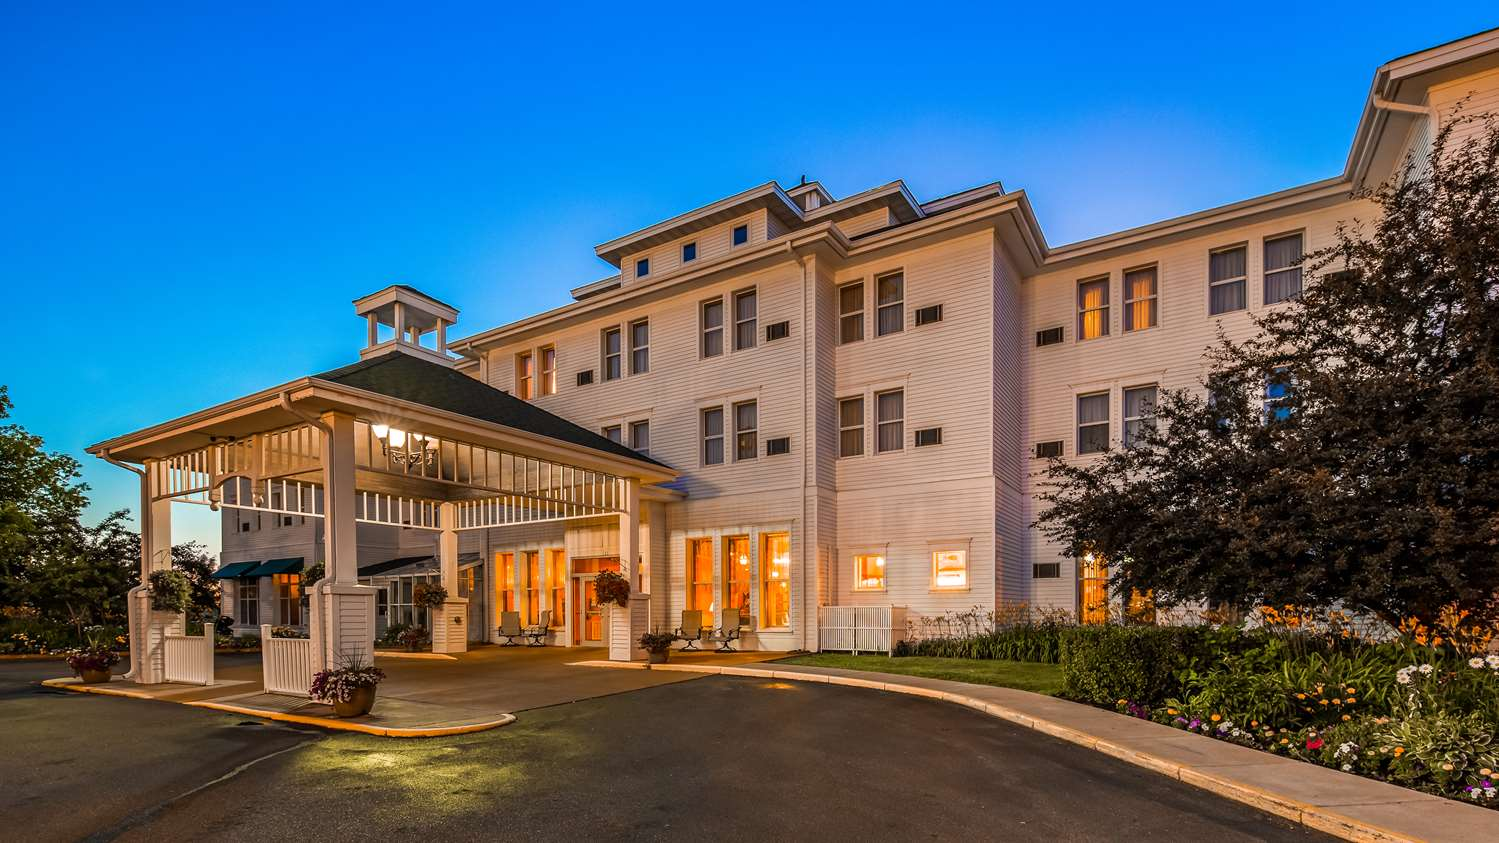 Ashland Wi Hotels Best Western The Hotel Chequamegon